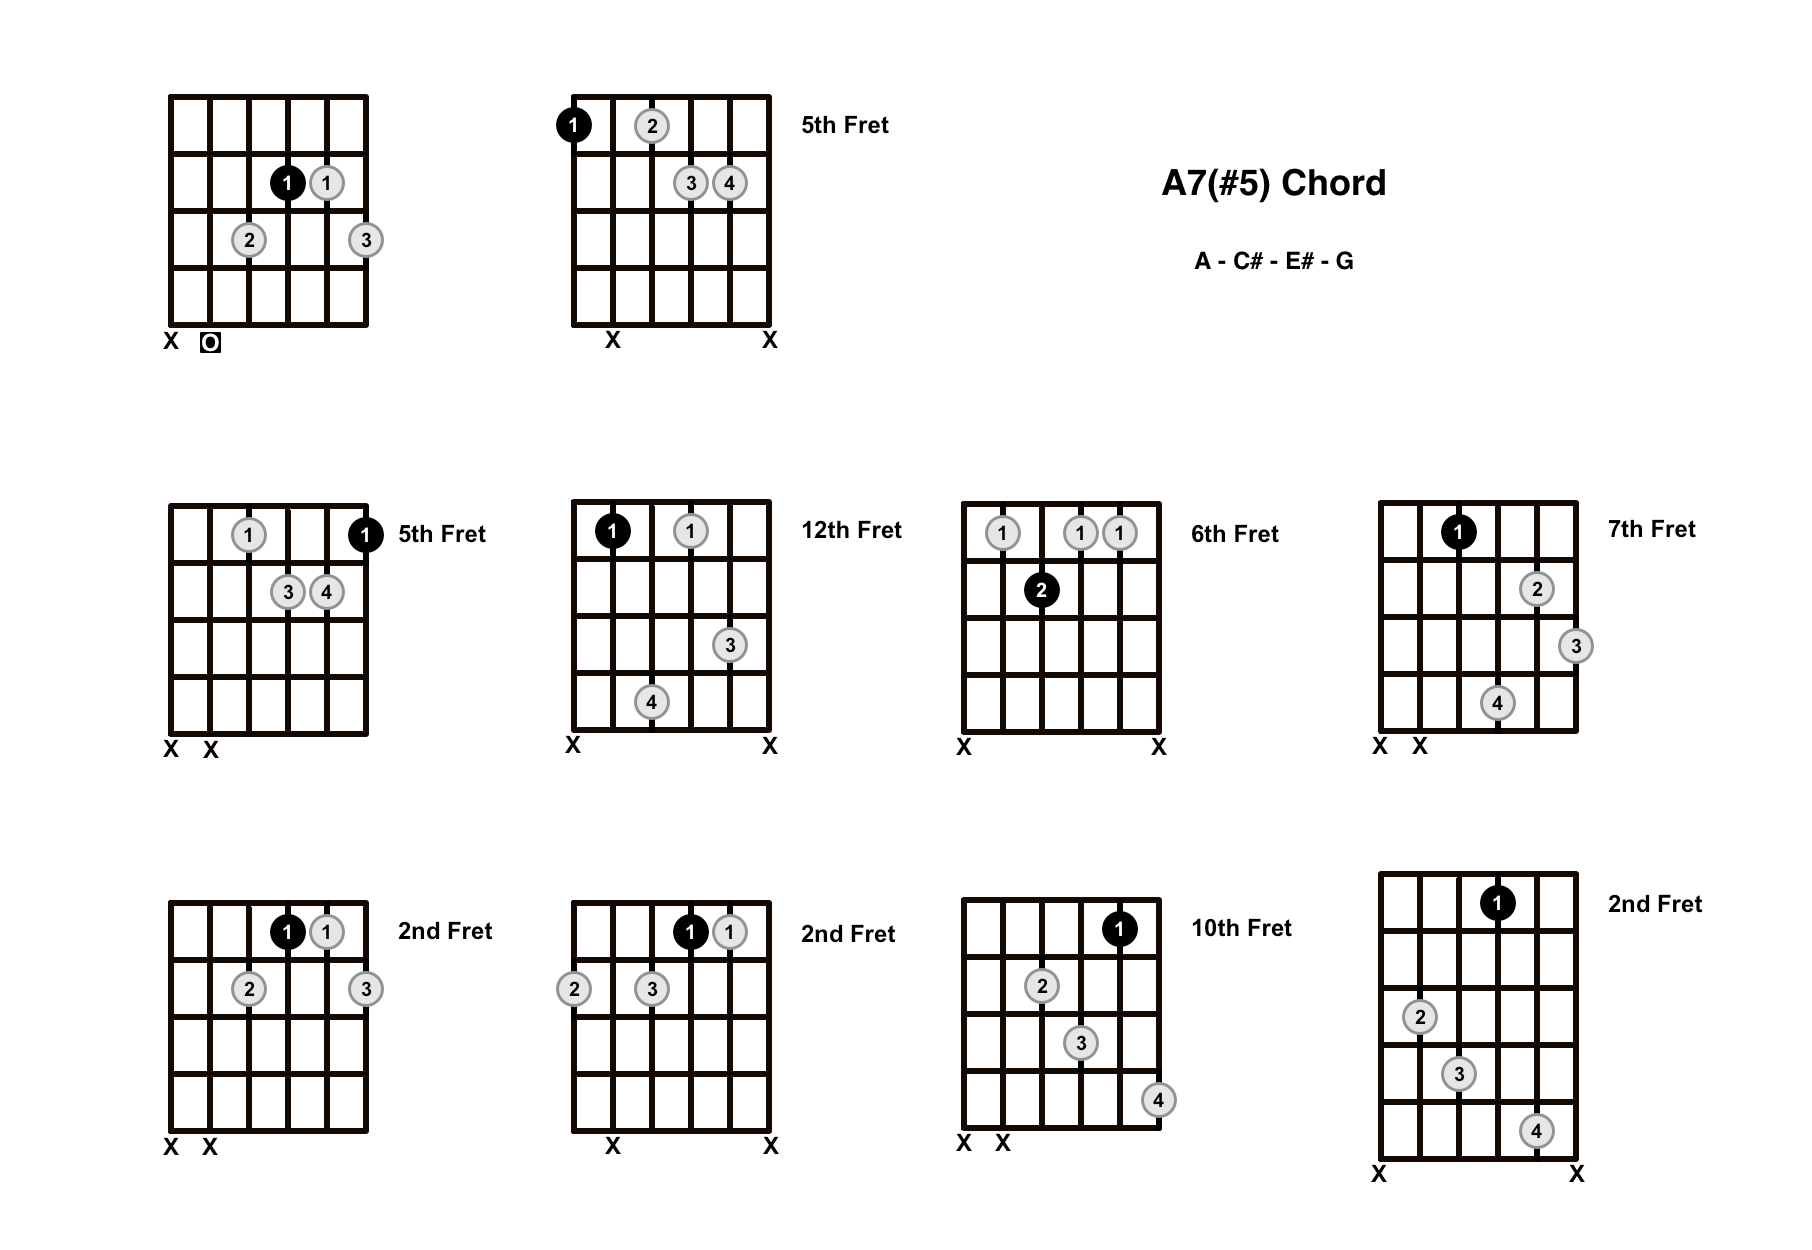 A Augmented 7 Chord On The Guitar (A7#5, A+7) – Diagrams, Finger Positions and Theory